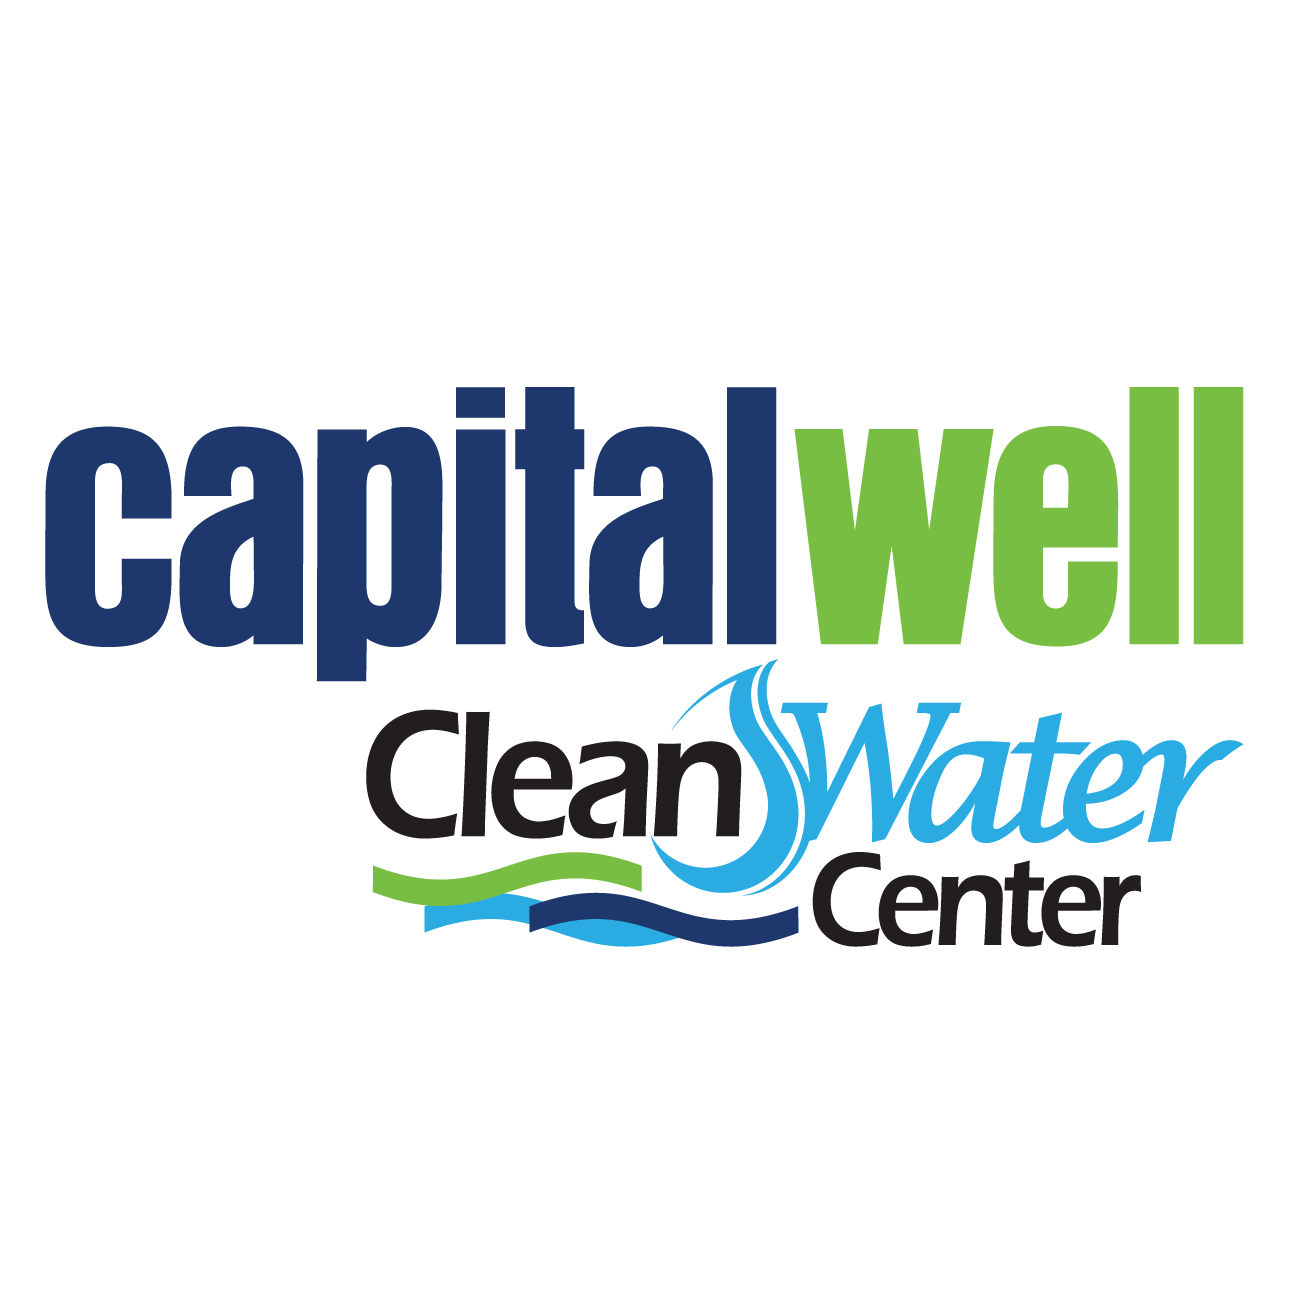 Capital Well Clean Water Center